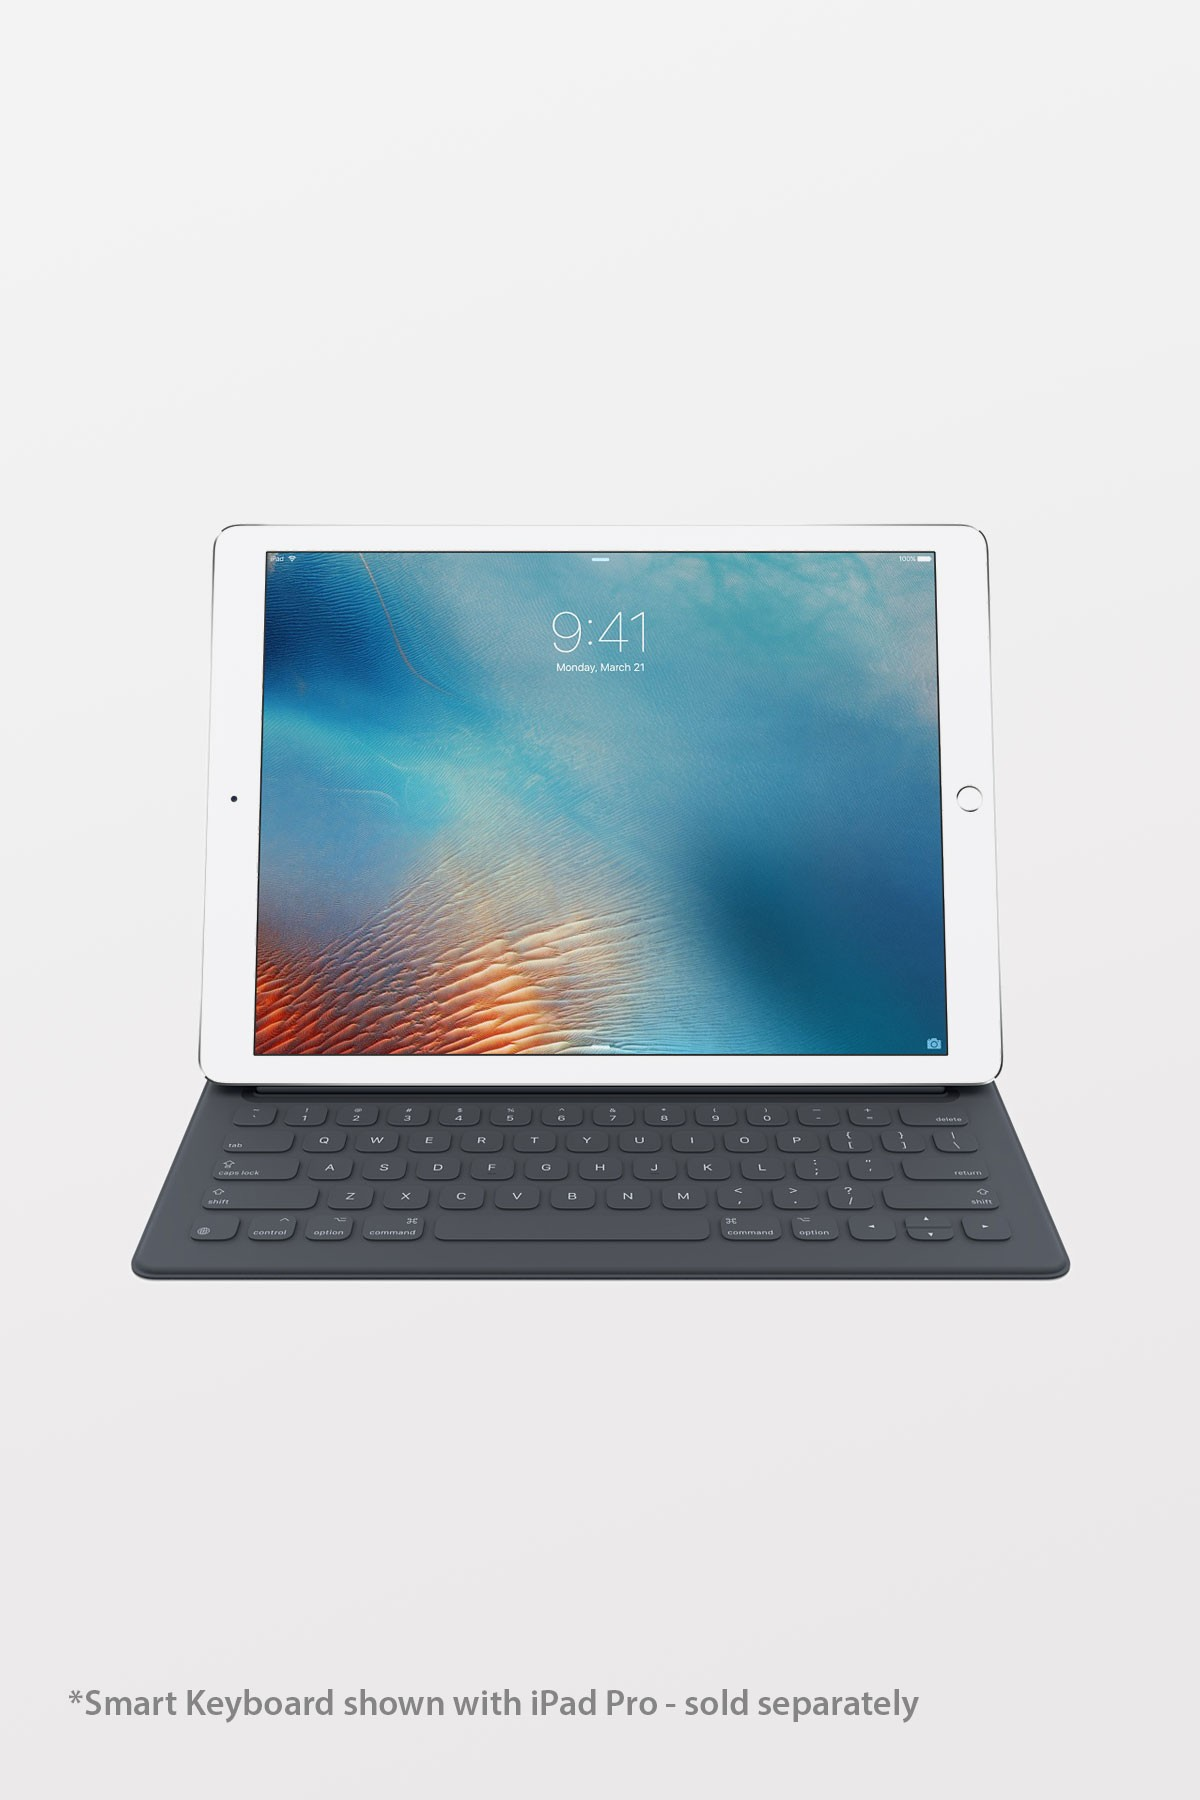 Apple iPad Pro 12.9-inch Smart Keyboard - Refurbished